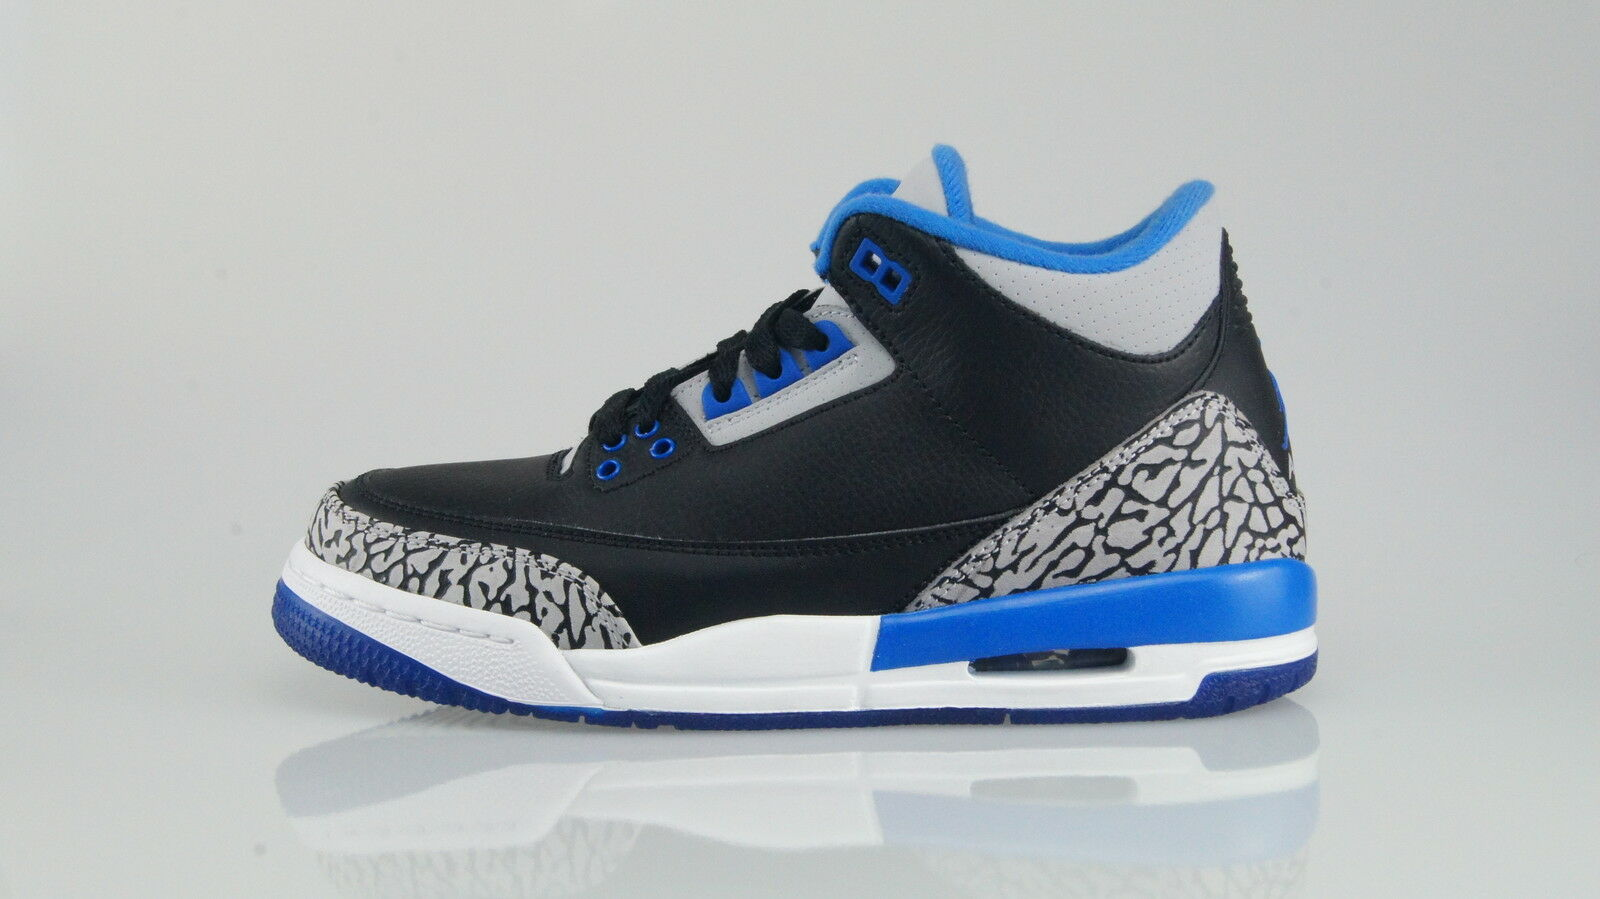 NIKE AIR JORDAN 3 RETRO Size 36,5 (4,5Y)